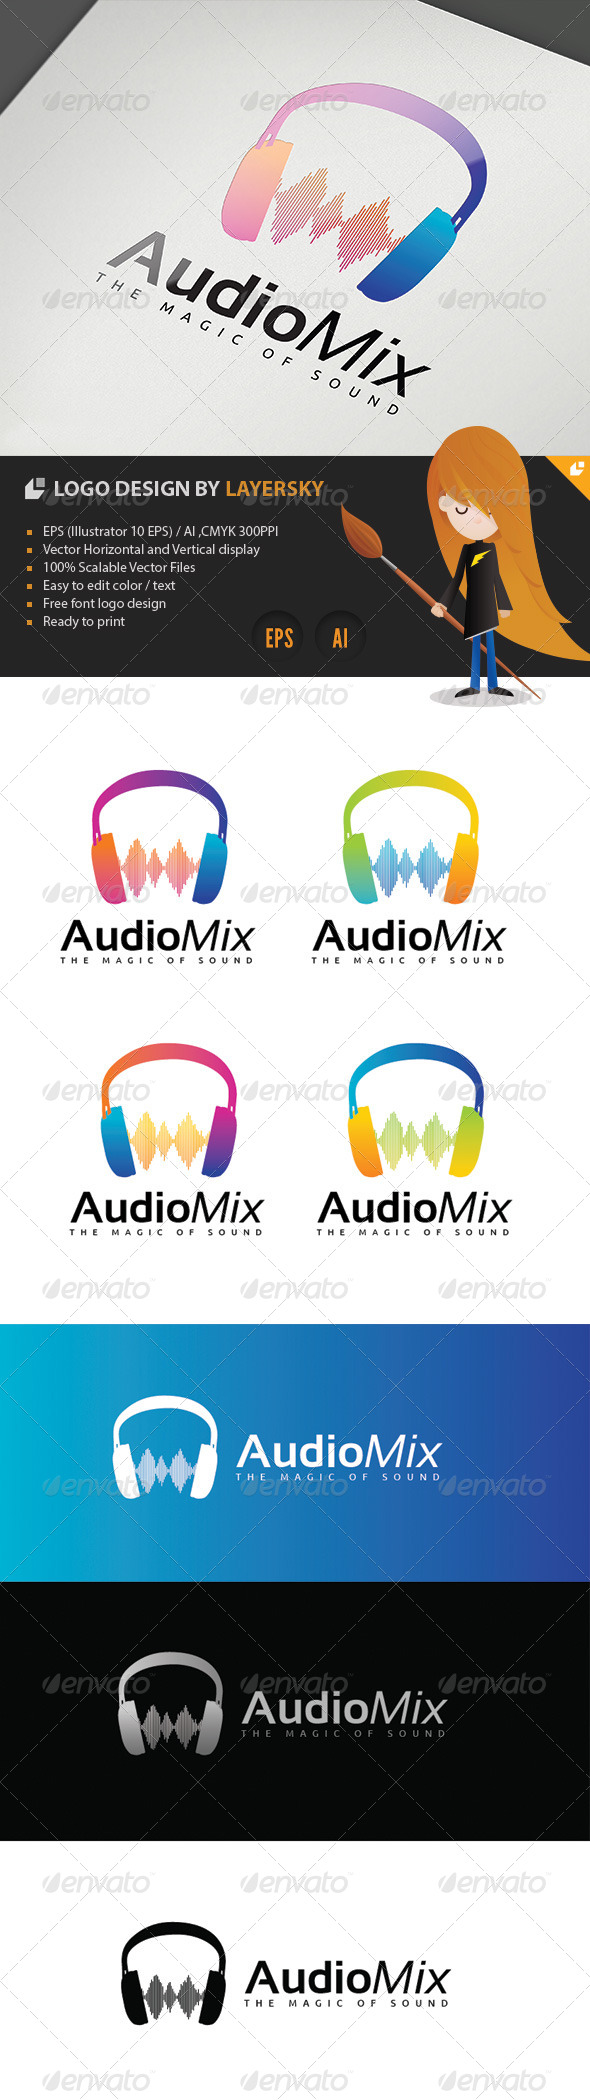 GraphicRiver Audio Mix Logo 4254029